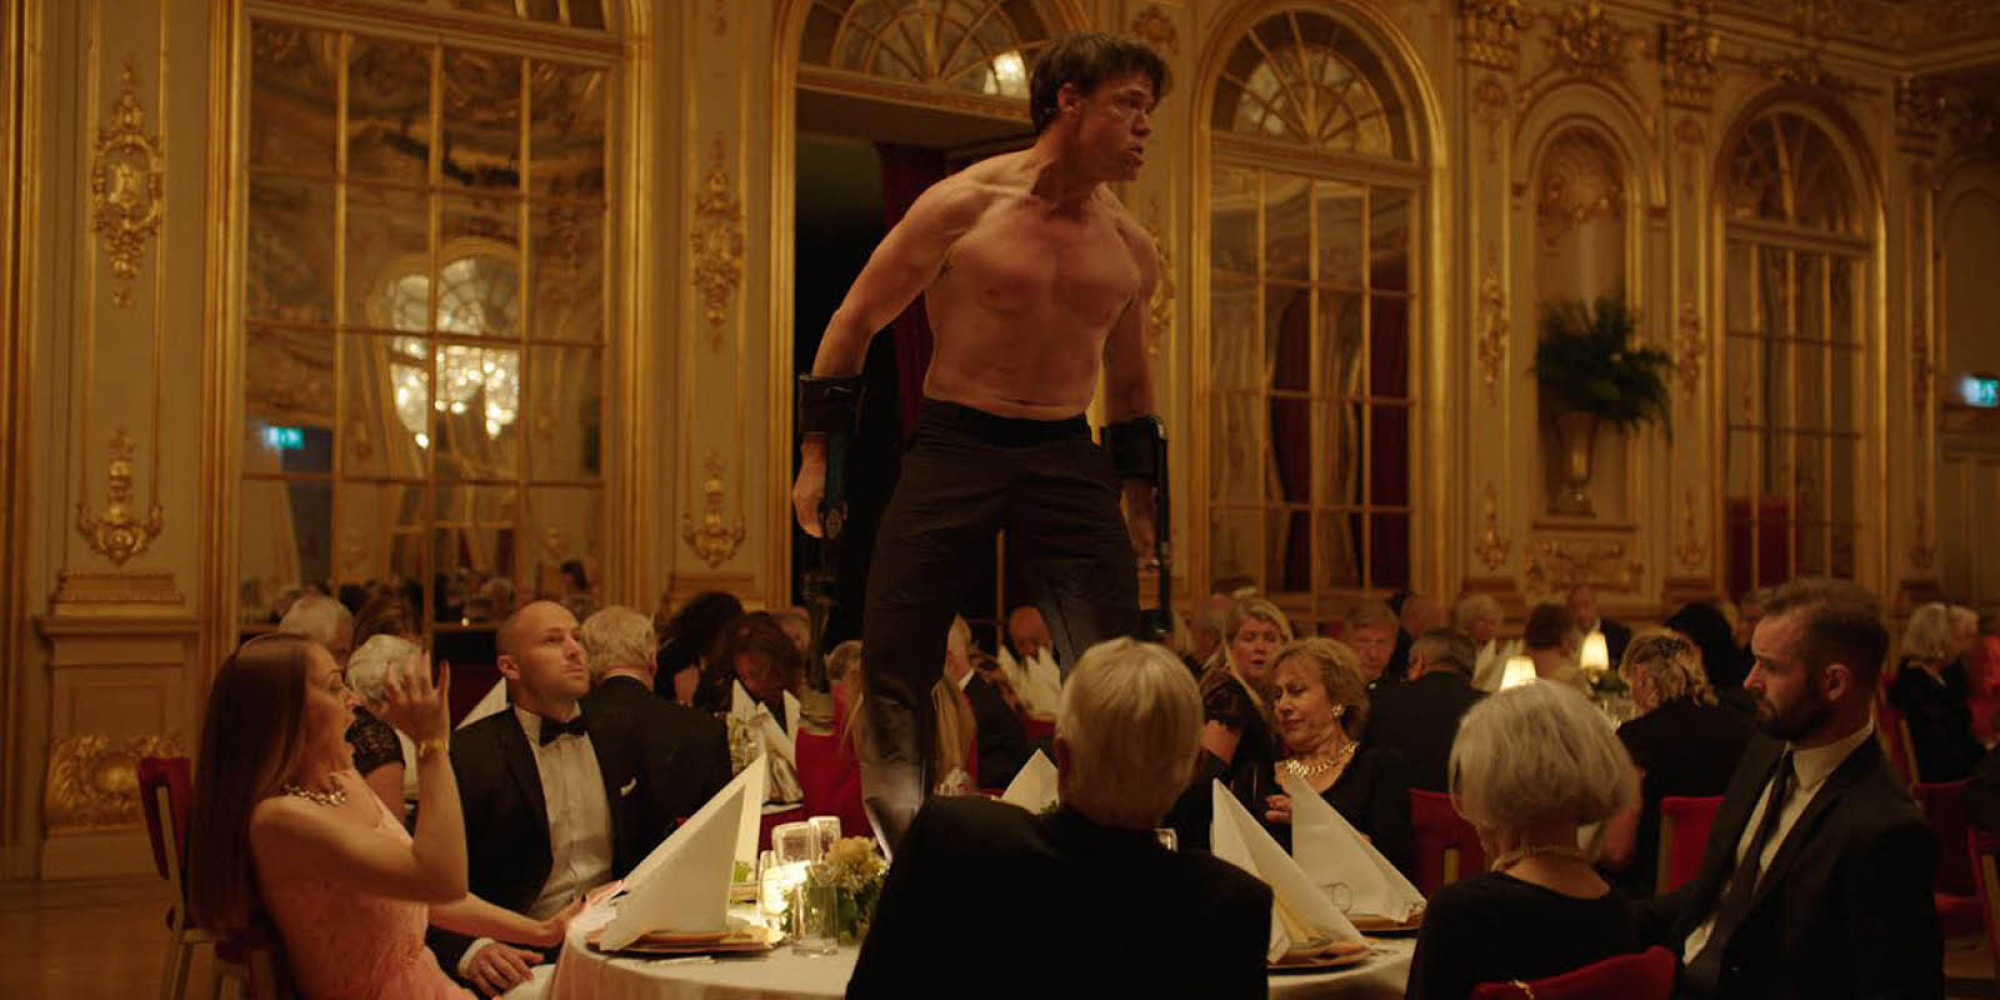 Ruben Östlund's art-world satire won the Palme d'Or, one of the most important film awards in the world.